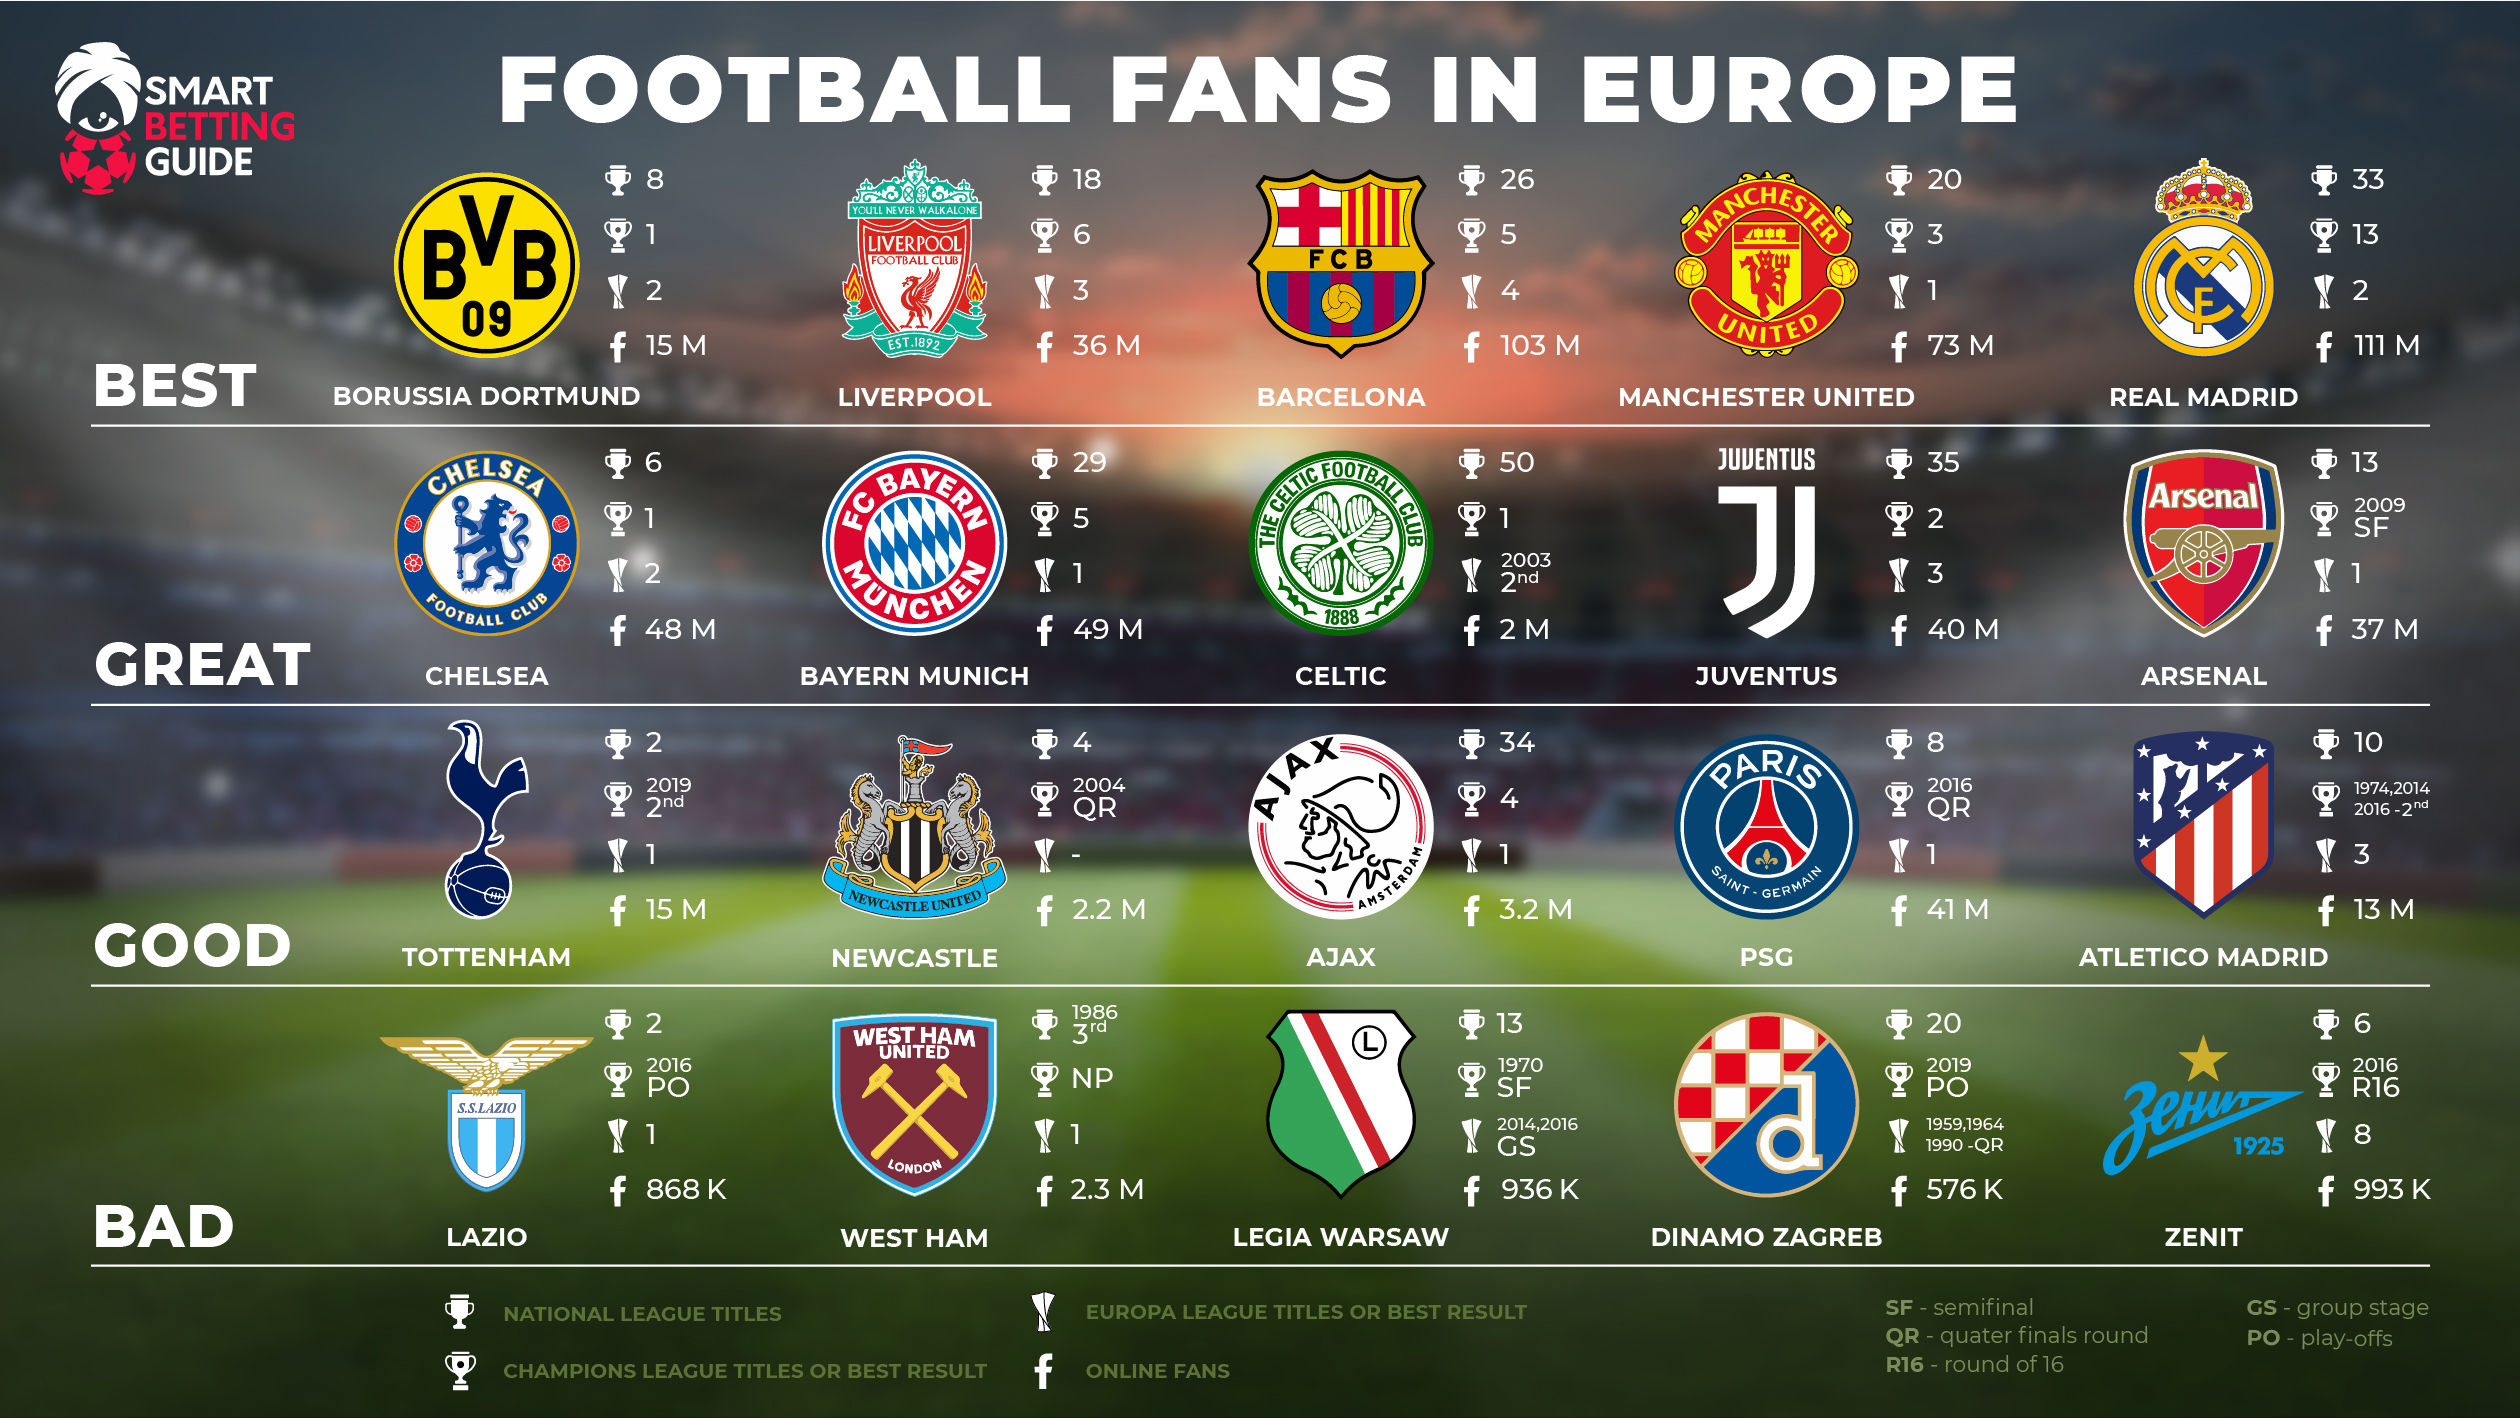 Who are the best Football Fans in Europe